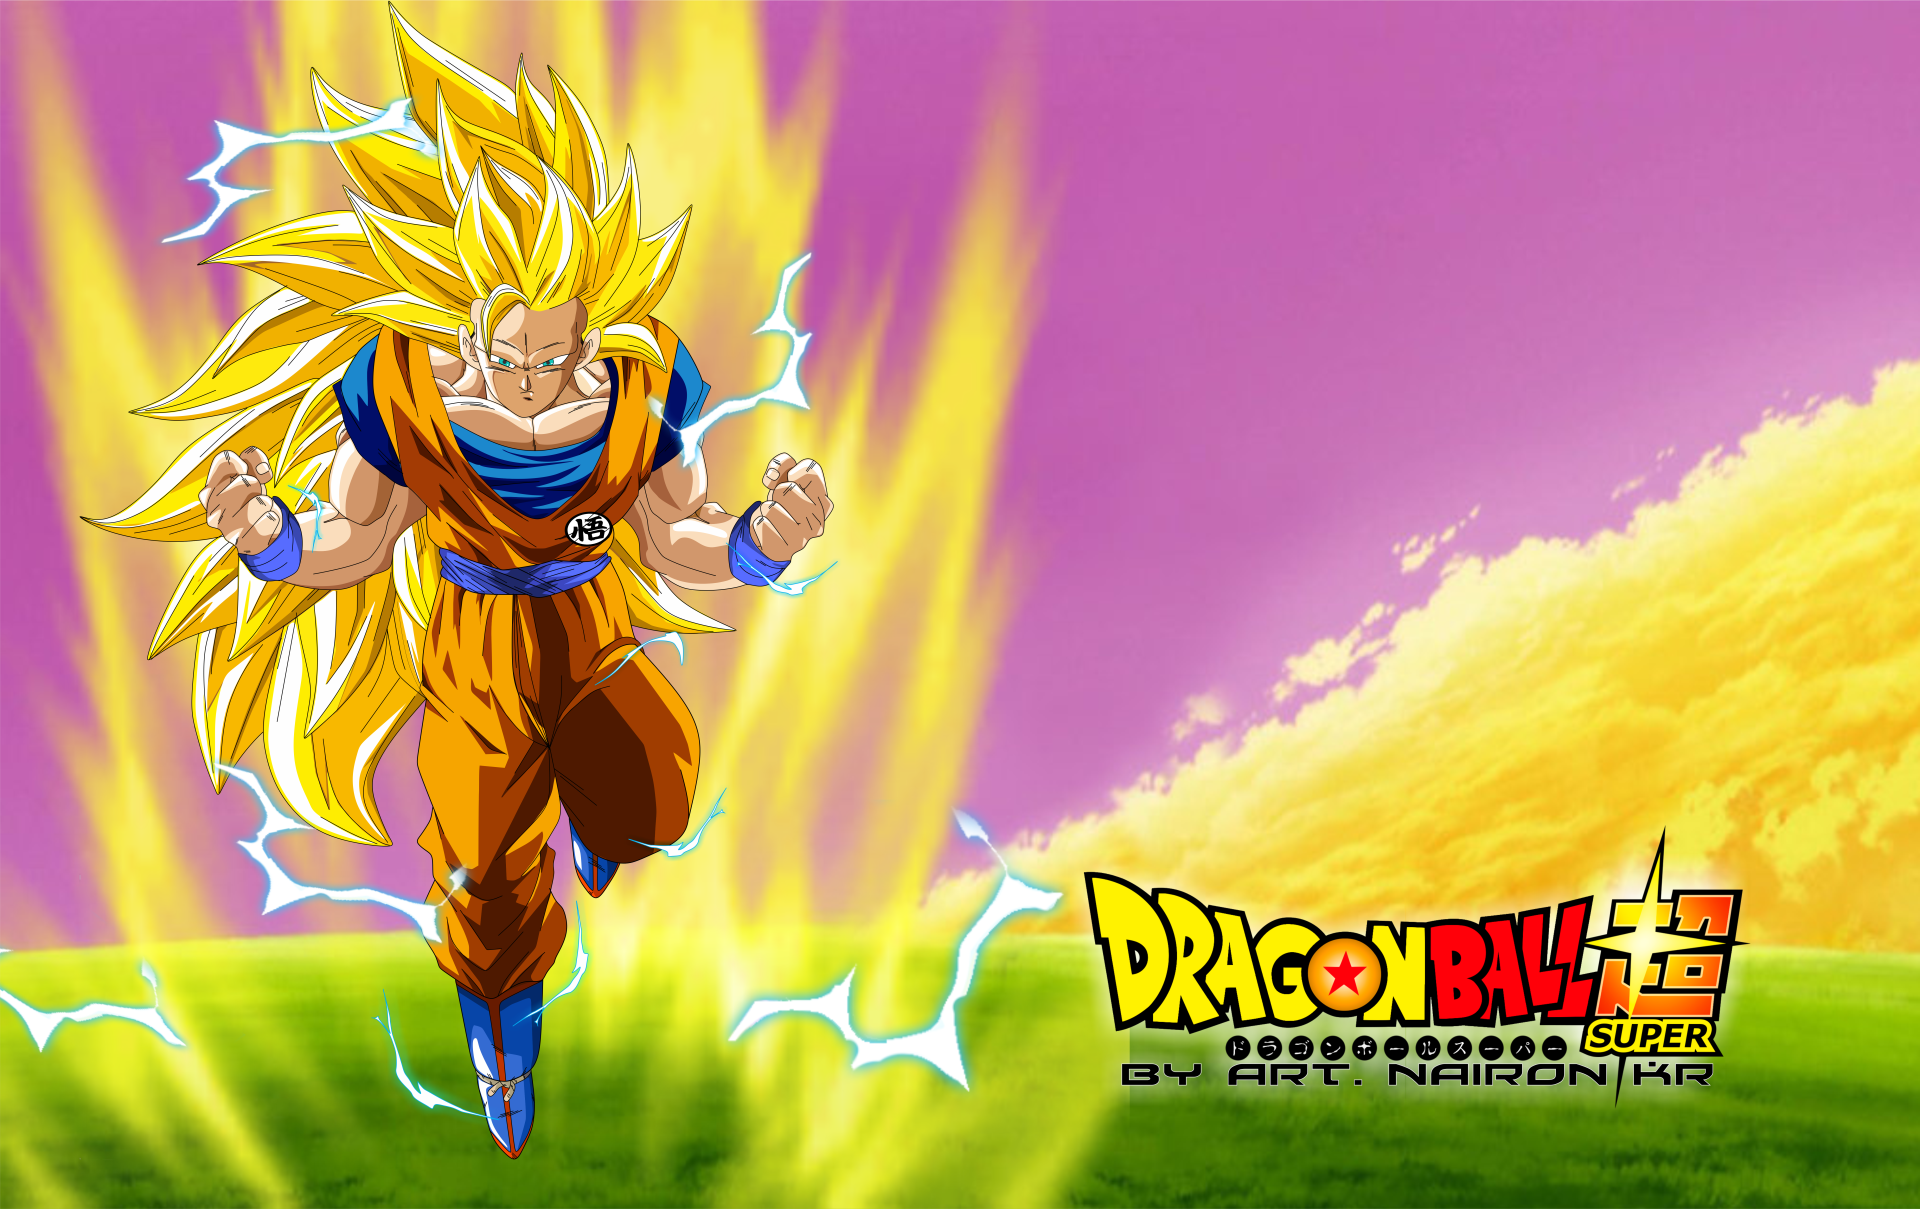 Anime Dragon Ball Super Goku Saiyan 3 Wallpaper